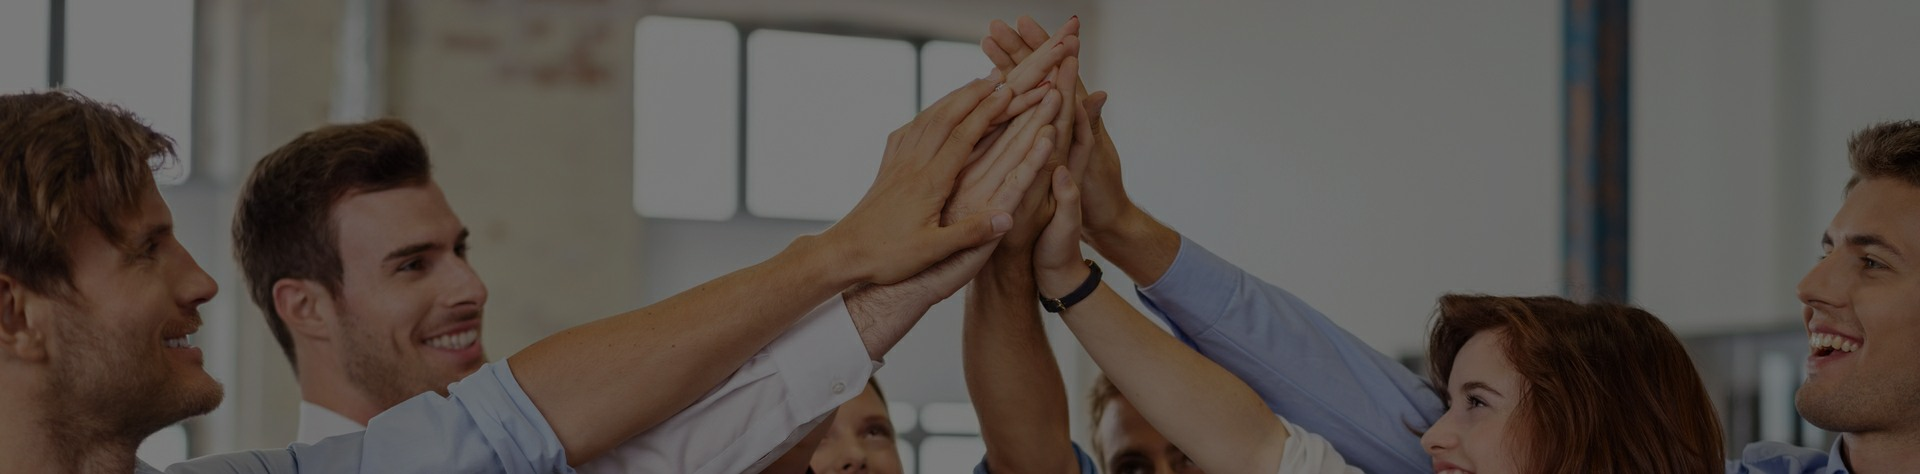 Collaboration Can Build Business Influence, Impact, and Income